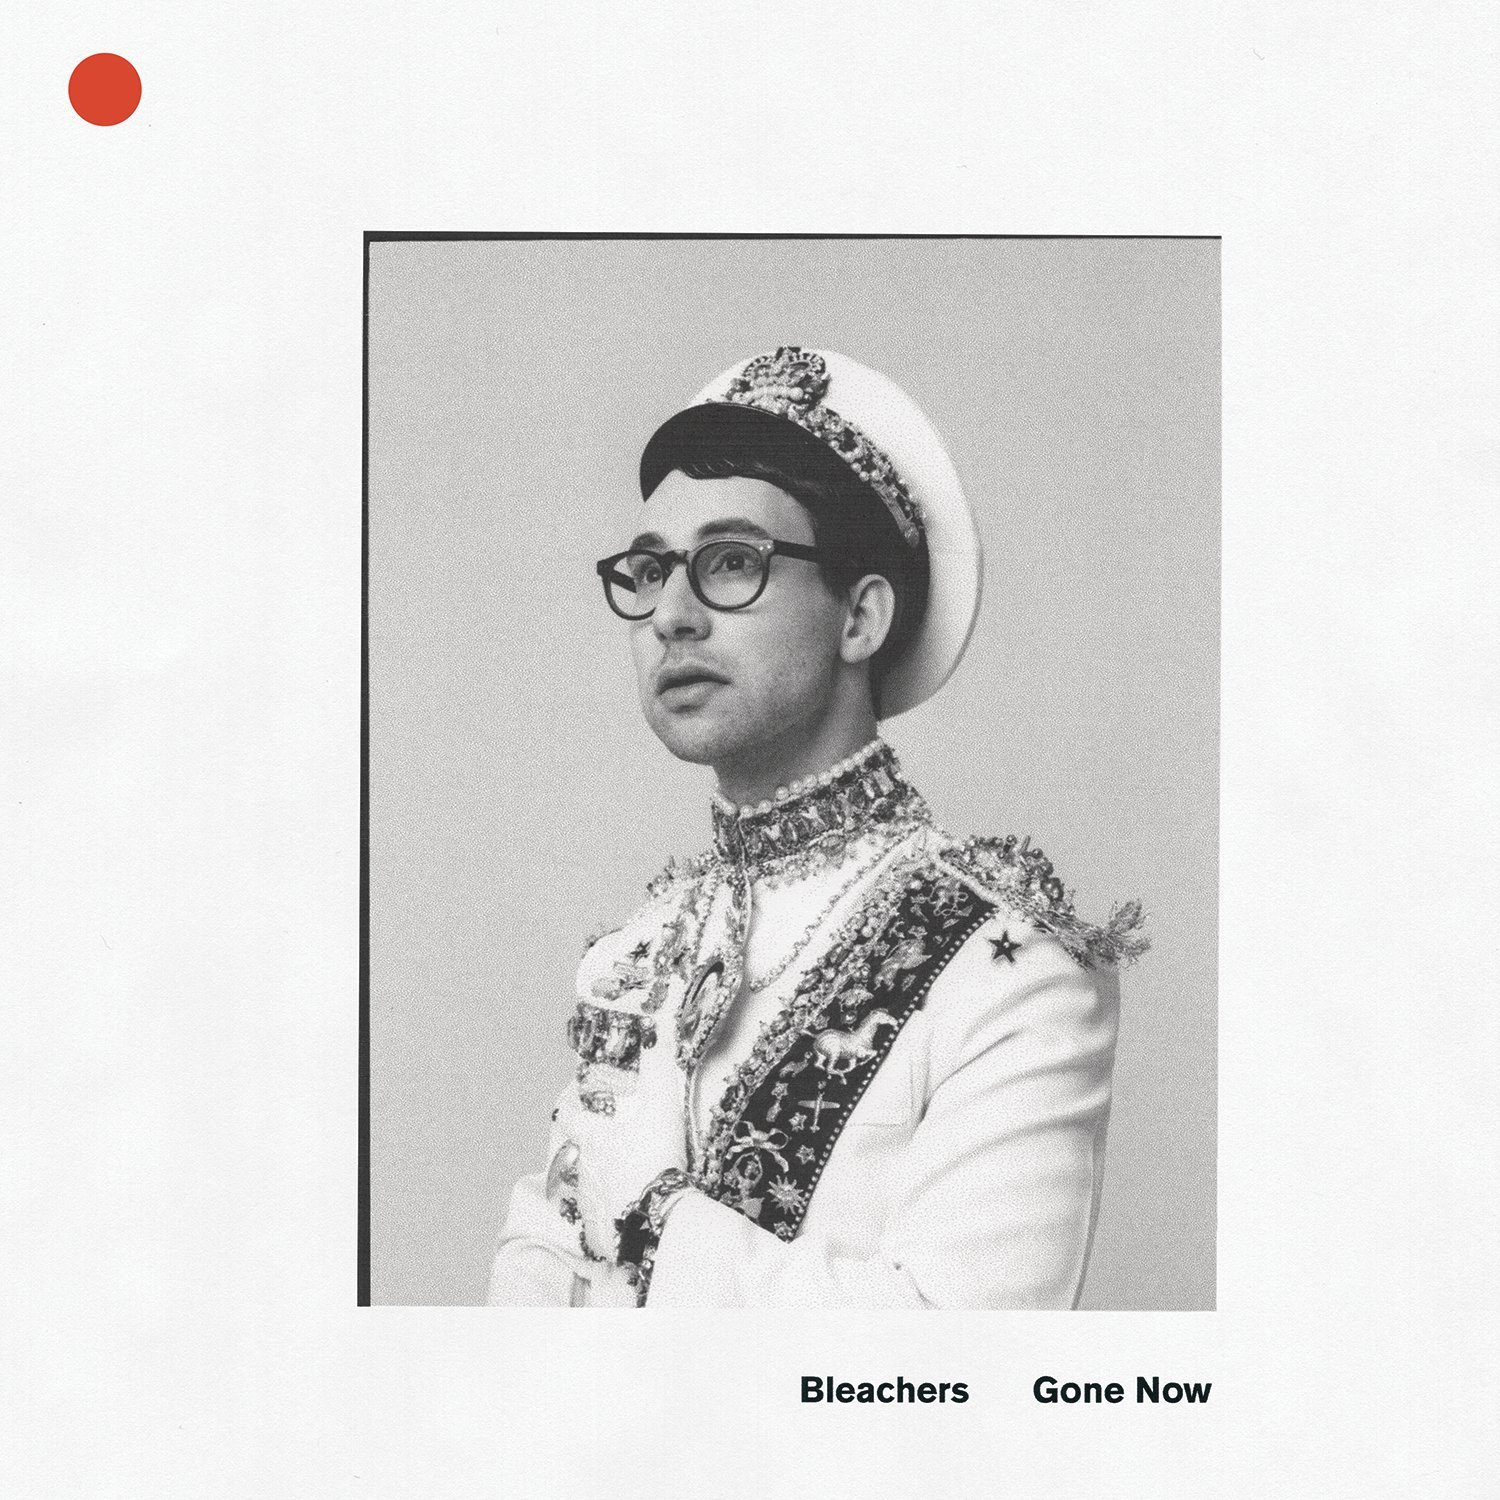 Bleachers, 'I Miss Those Days' | Track Review